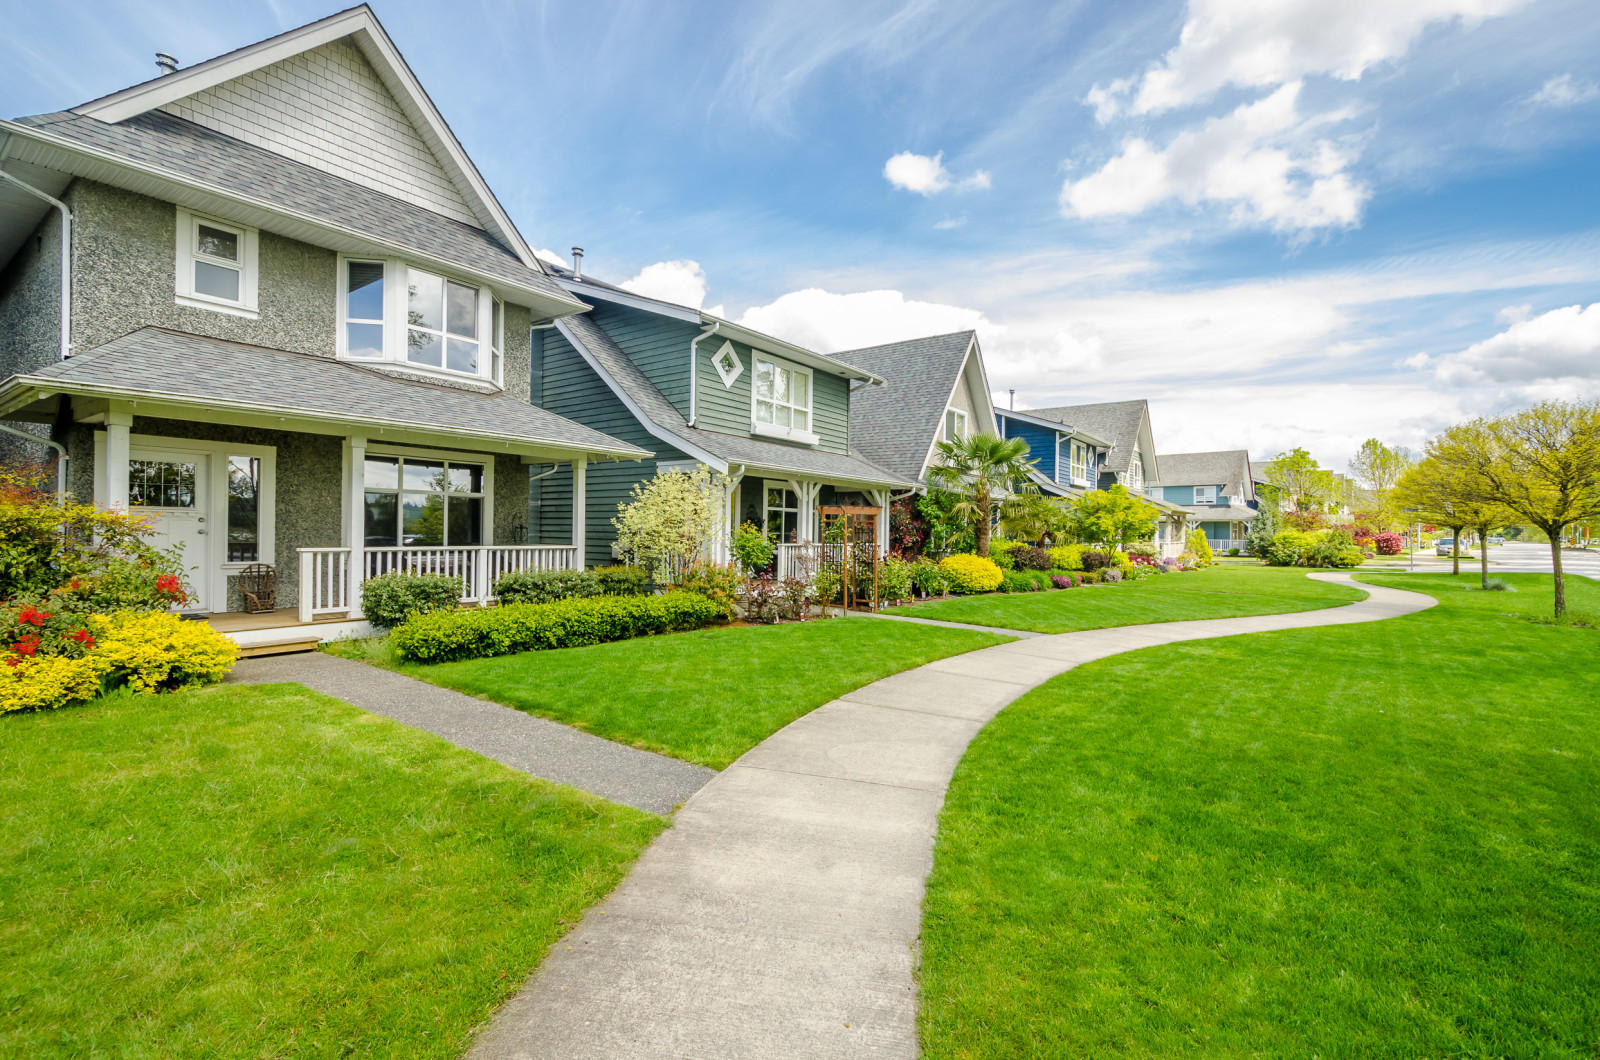 Rockin The Suburbs Home Values And Rents In Urban Suburban And Rural Areas